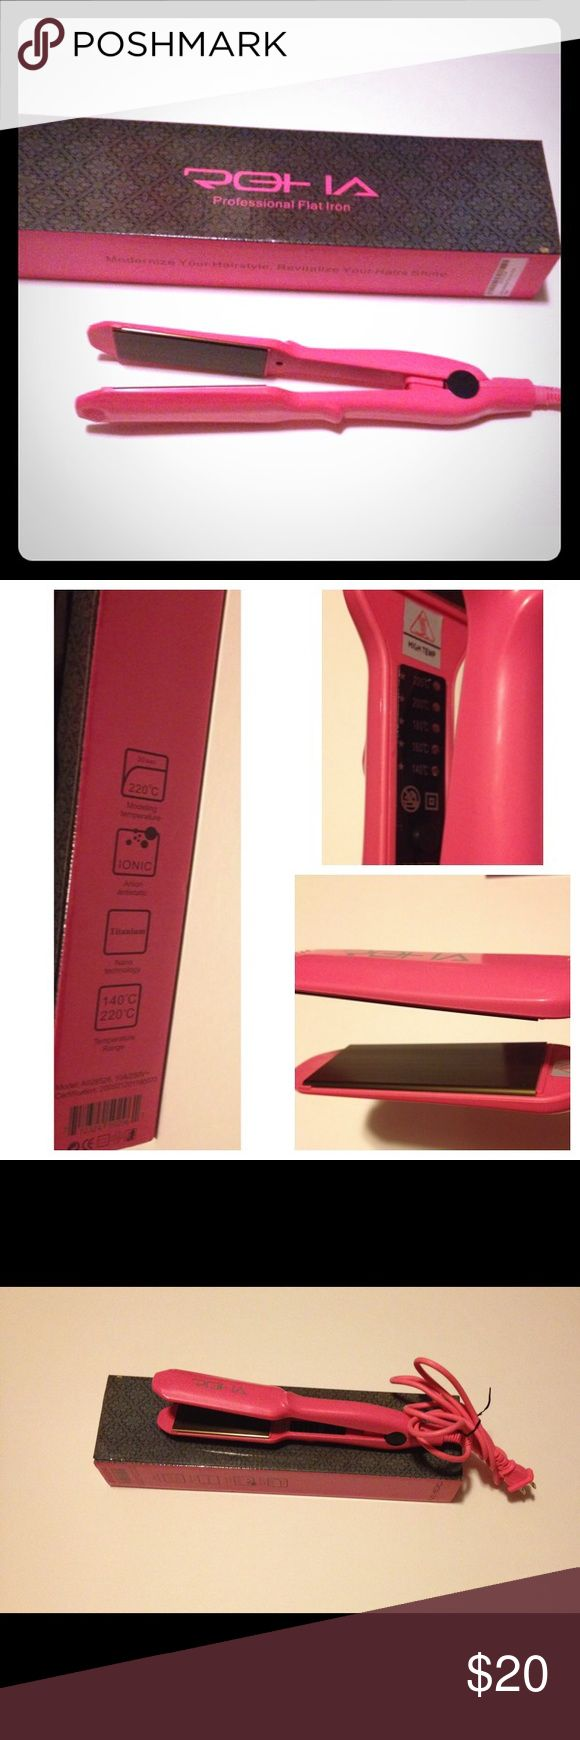 "Roha Professional Flat Irons ""PLEASE MAKE SURE ITEM IS STILL AVAILABLE BEFORE PURCHASING"" Roha flat irons, 1 1/2"" titanium nano technology,220 C temp,heats in 30 sec,used once,gets hot and has a push button to turn on.FAST SHIPPING SAME OR NEXT DAY MON-SAT. Roha Accessories Hair Accessories"